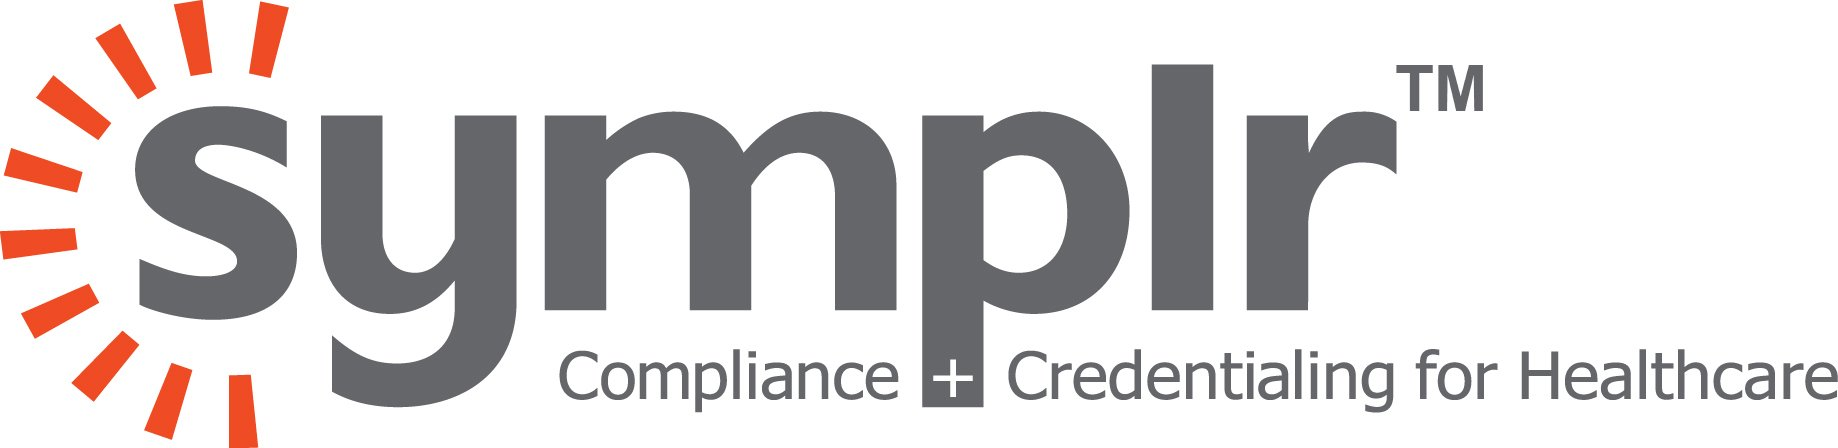 VCS Changes Name to symplr